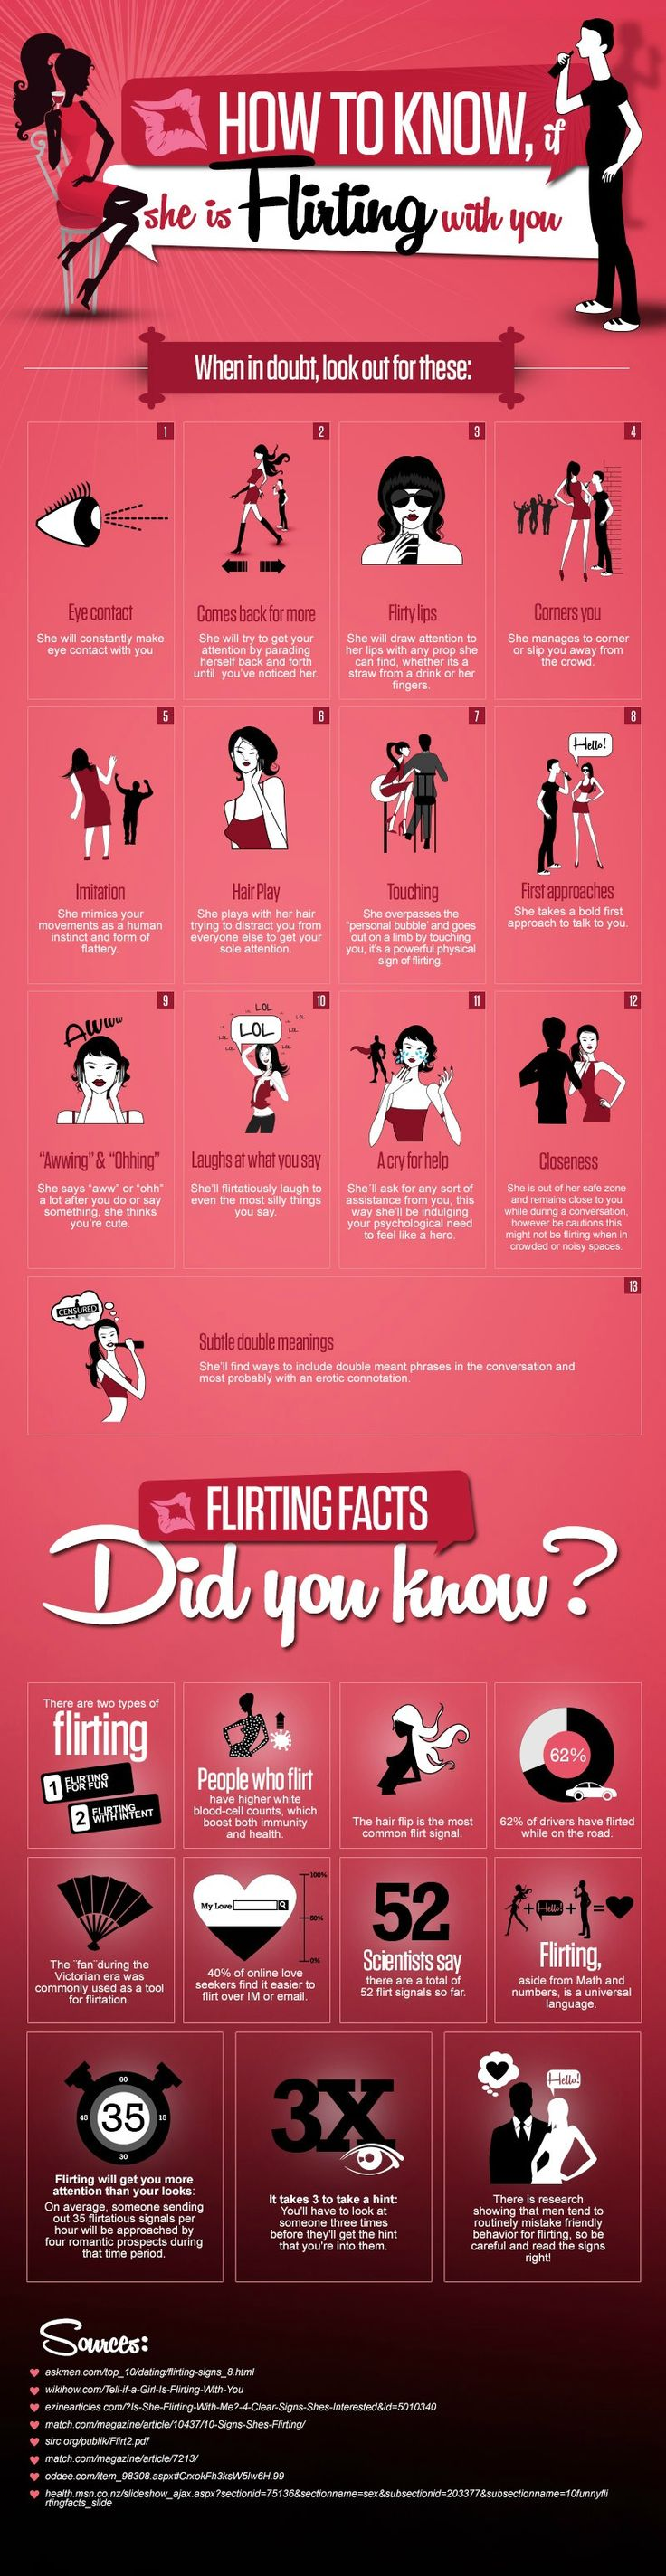 signs of women flirting body language